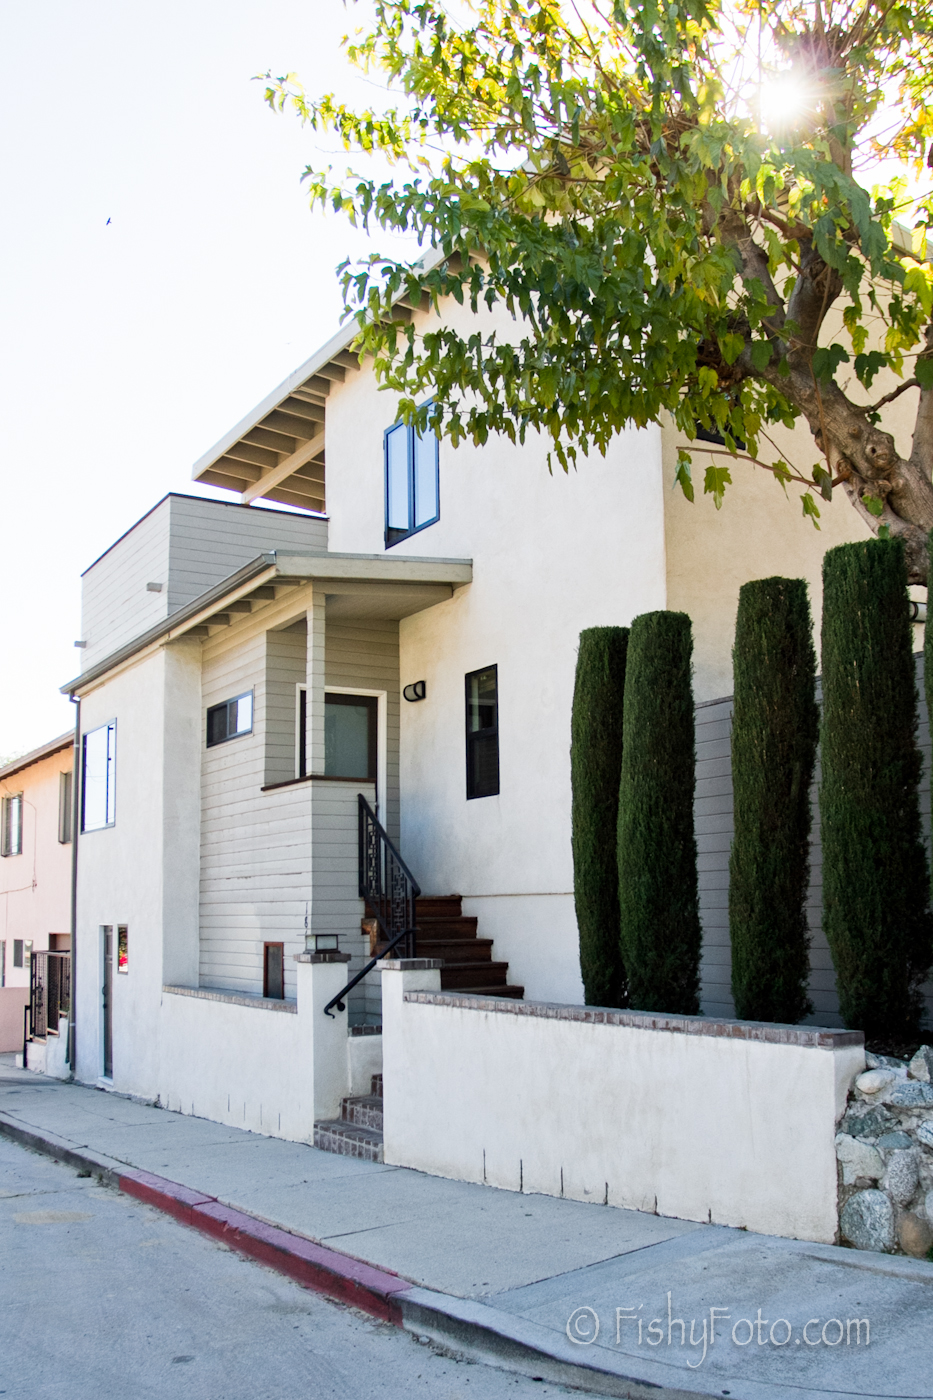 https://www.redfin.com/CA/Los-Angeles/1865-Lobdell-Pl-90026/home/7056014